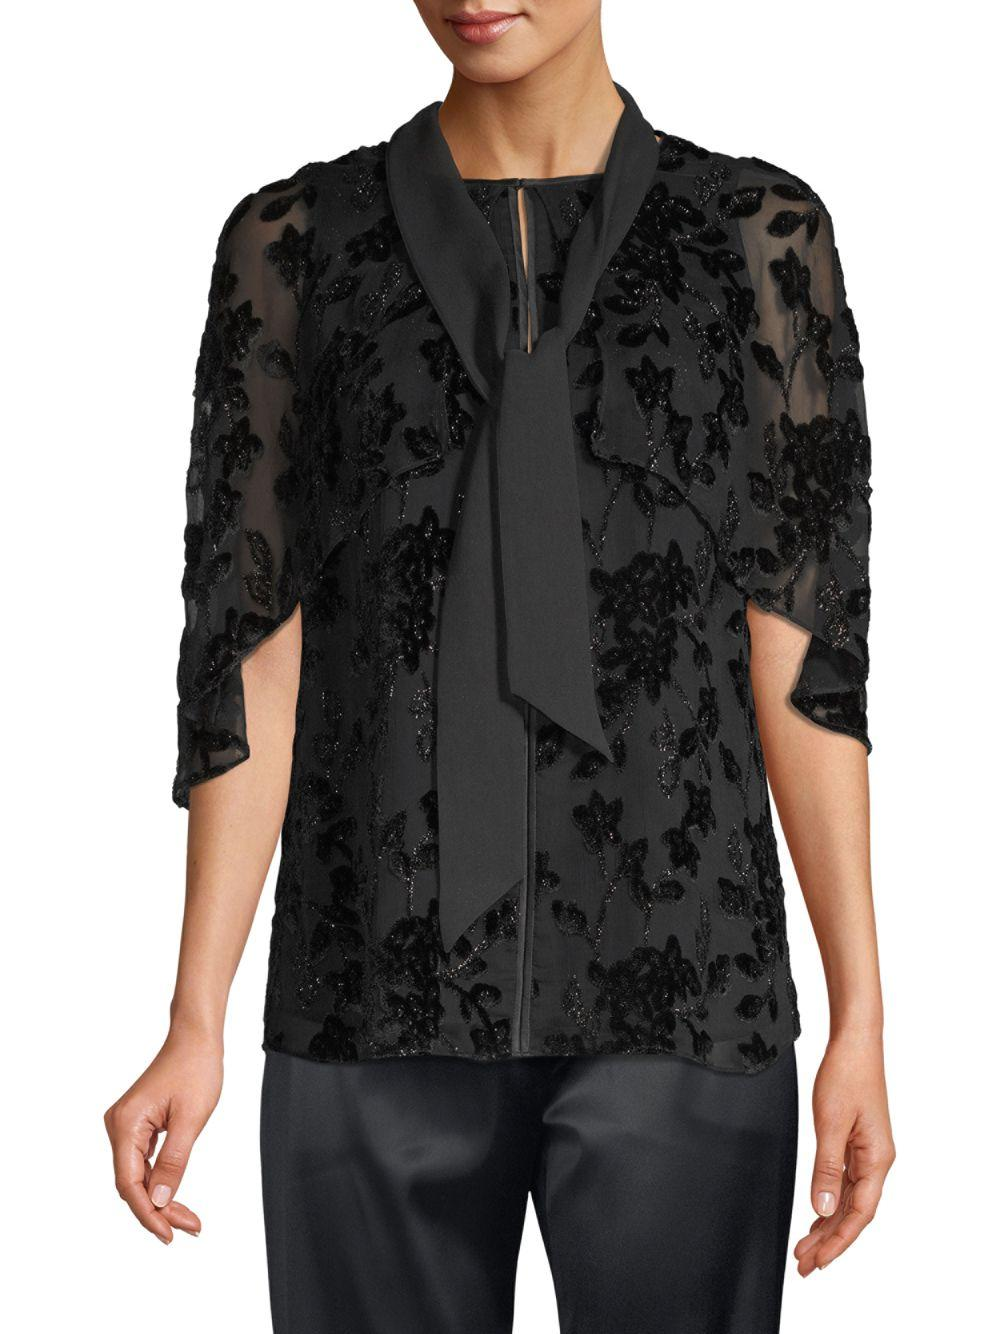 f7b0a8432eeef8 Lyst - Elie Tahari Rory Silk-blend Burnout Blouse in Black